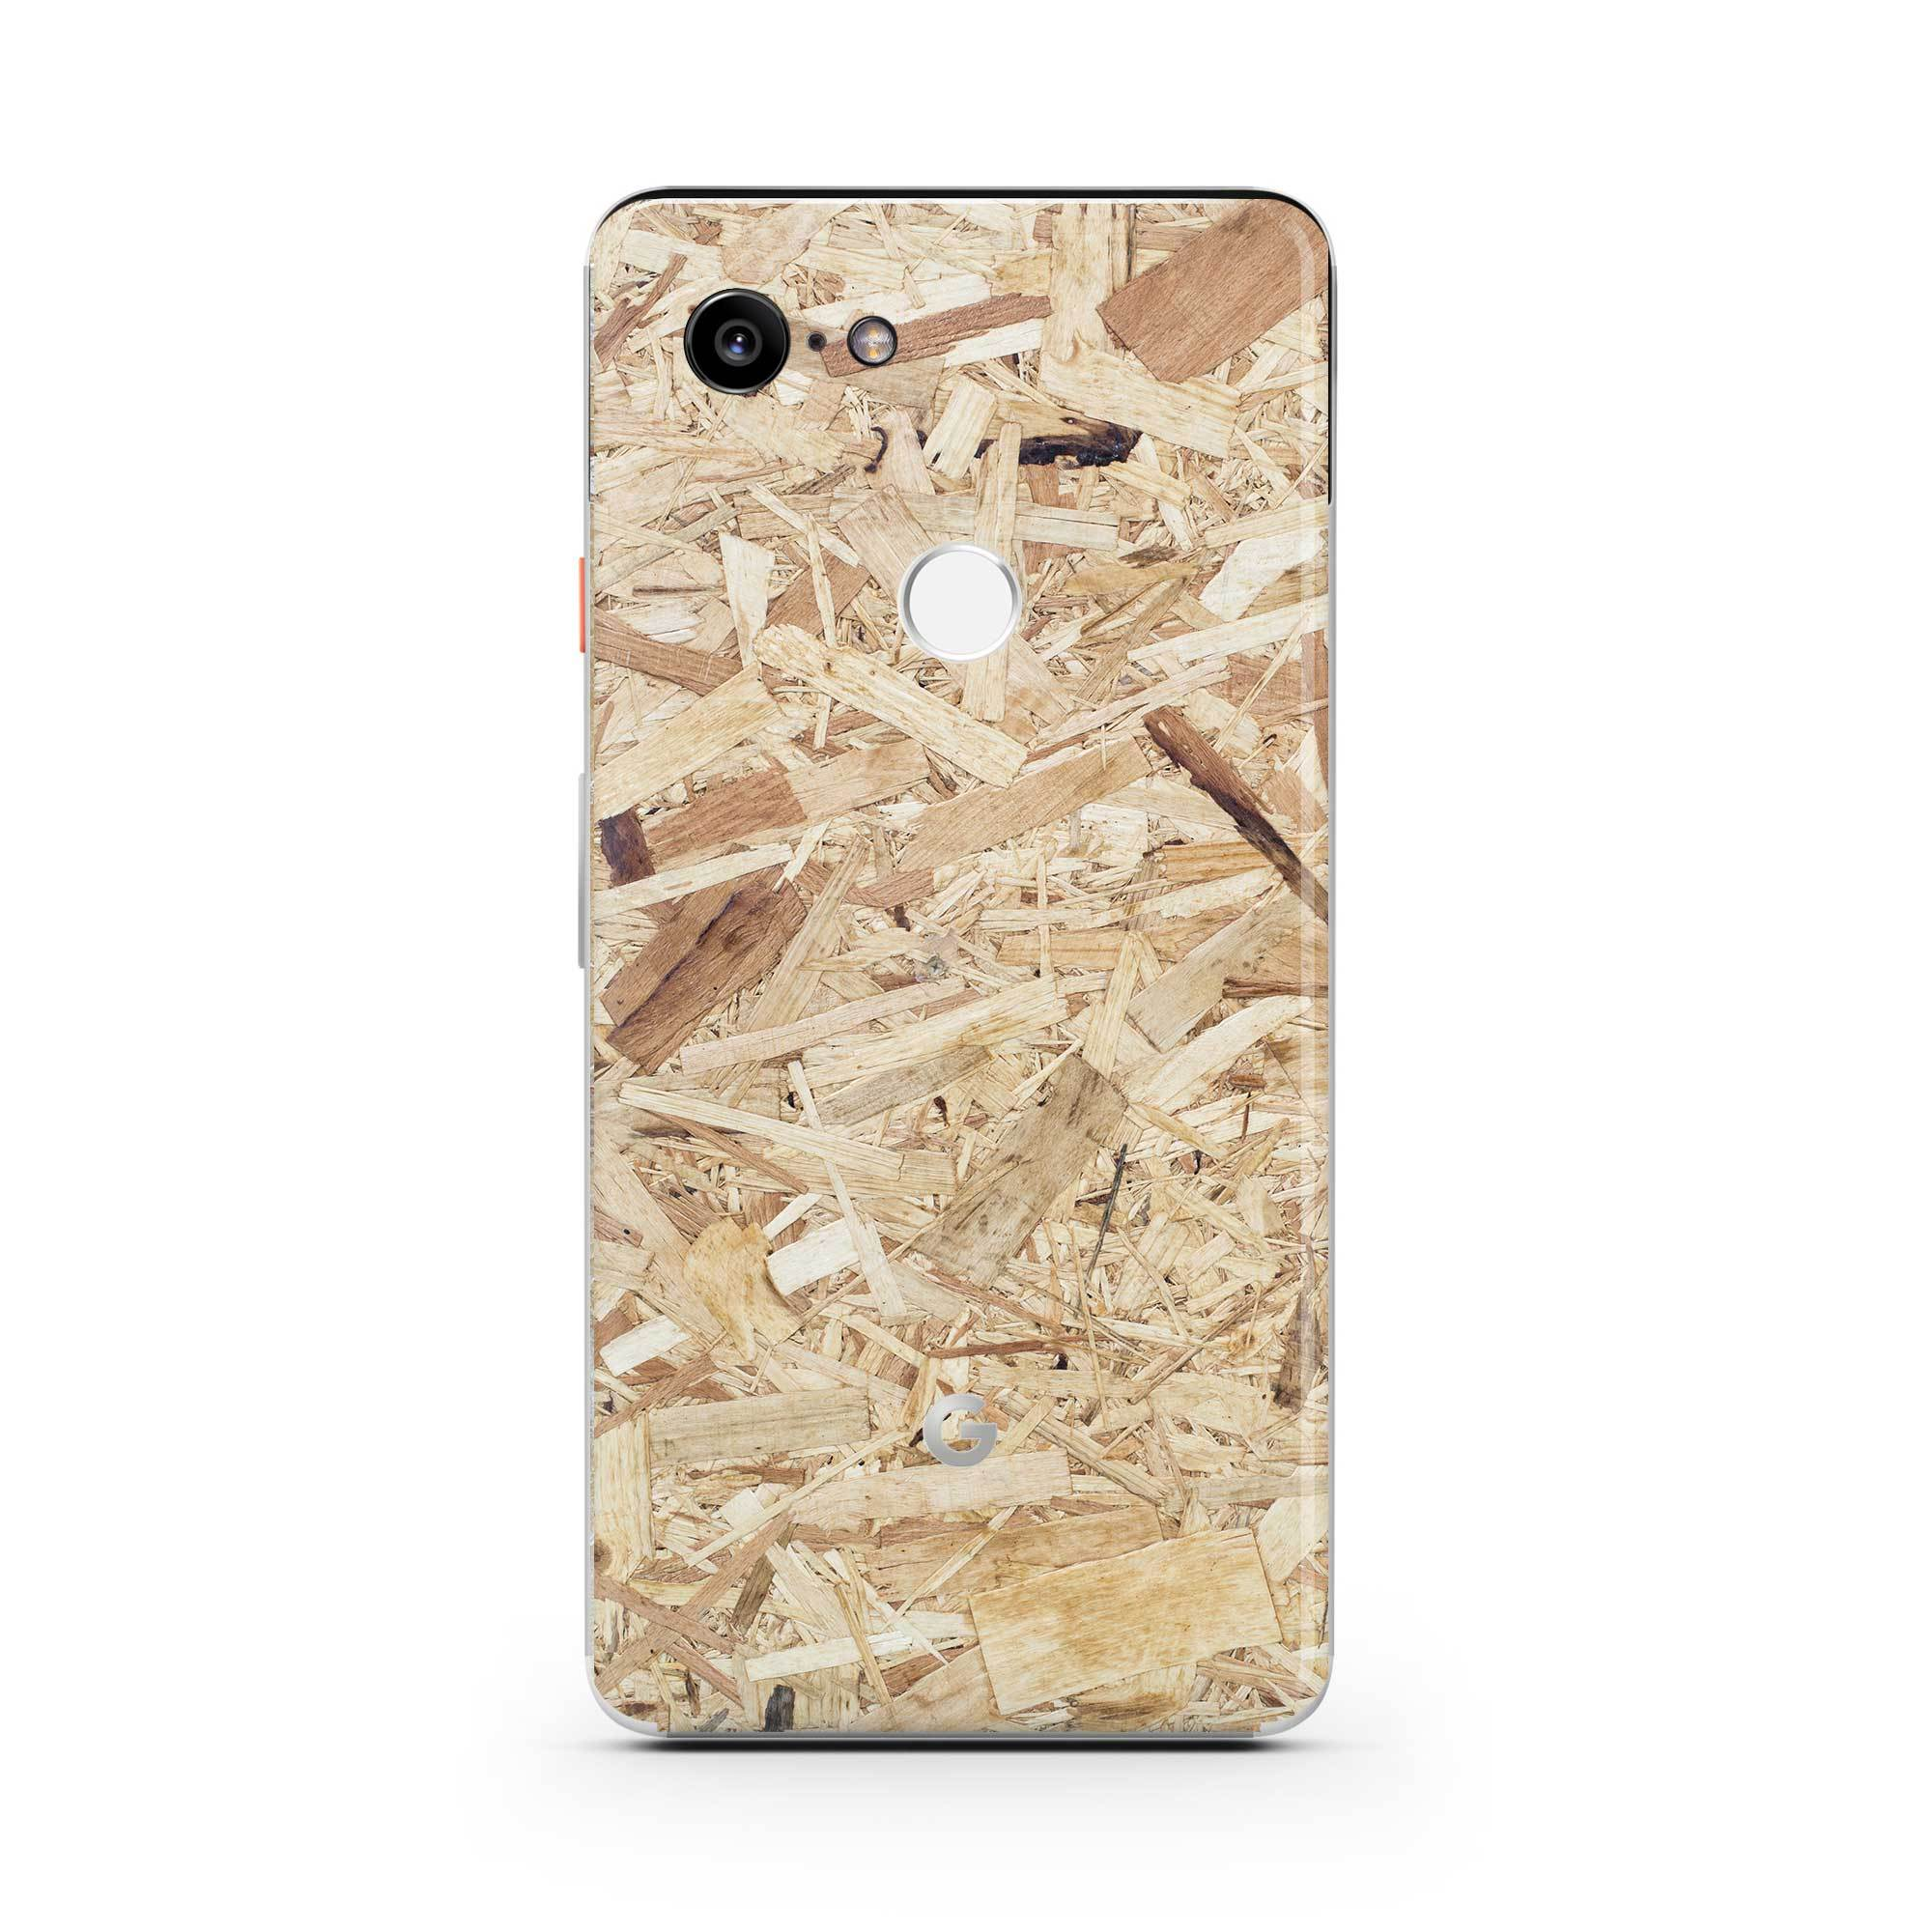 Plywood Pixel 3 XL Skin + Case